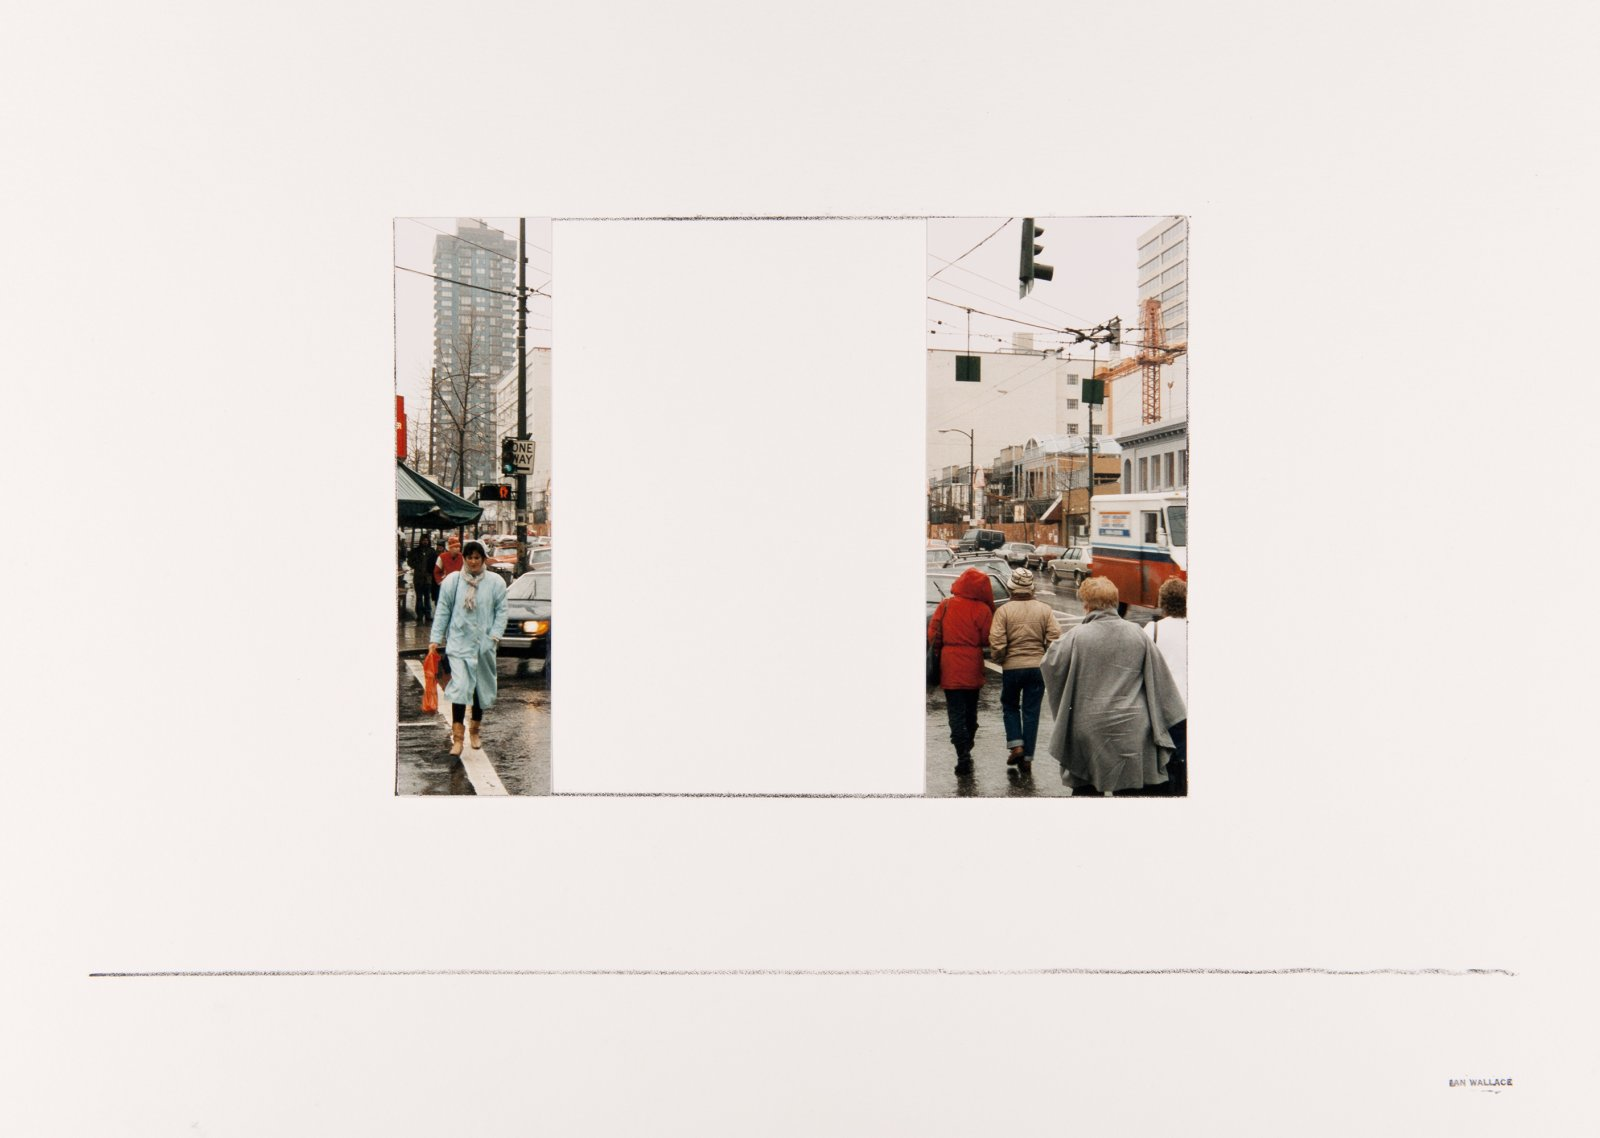 Ian Wallace,10 studies for My Heroes in the Street (1986), 1986, 10lithographs and colour photographs on paper, 15 x 22 in. (39 x 56 cm)